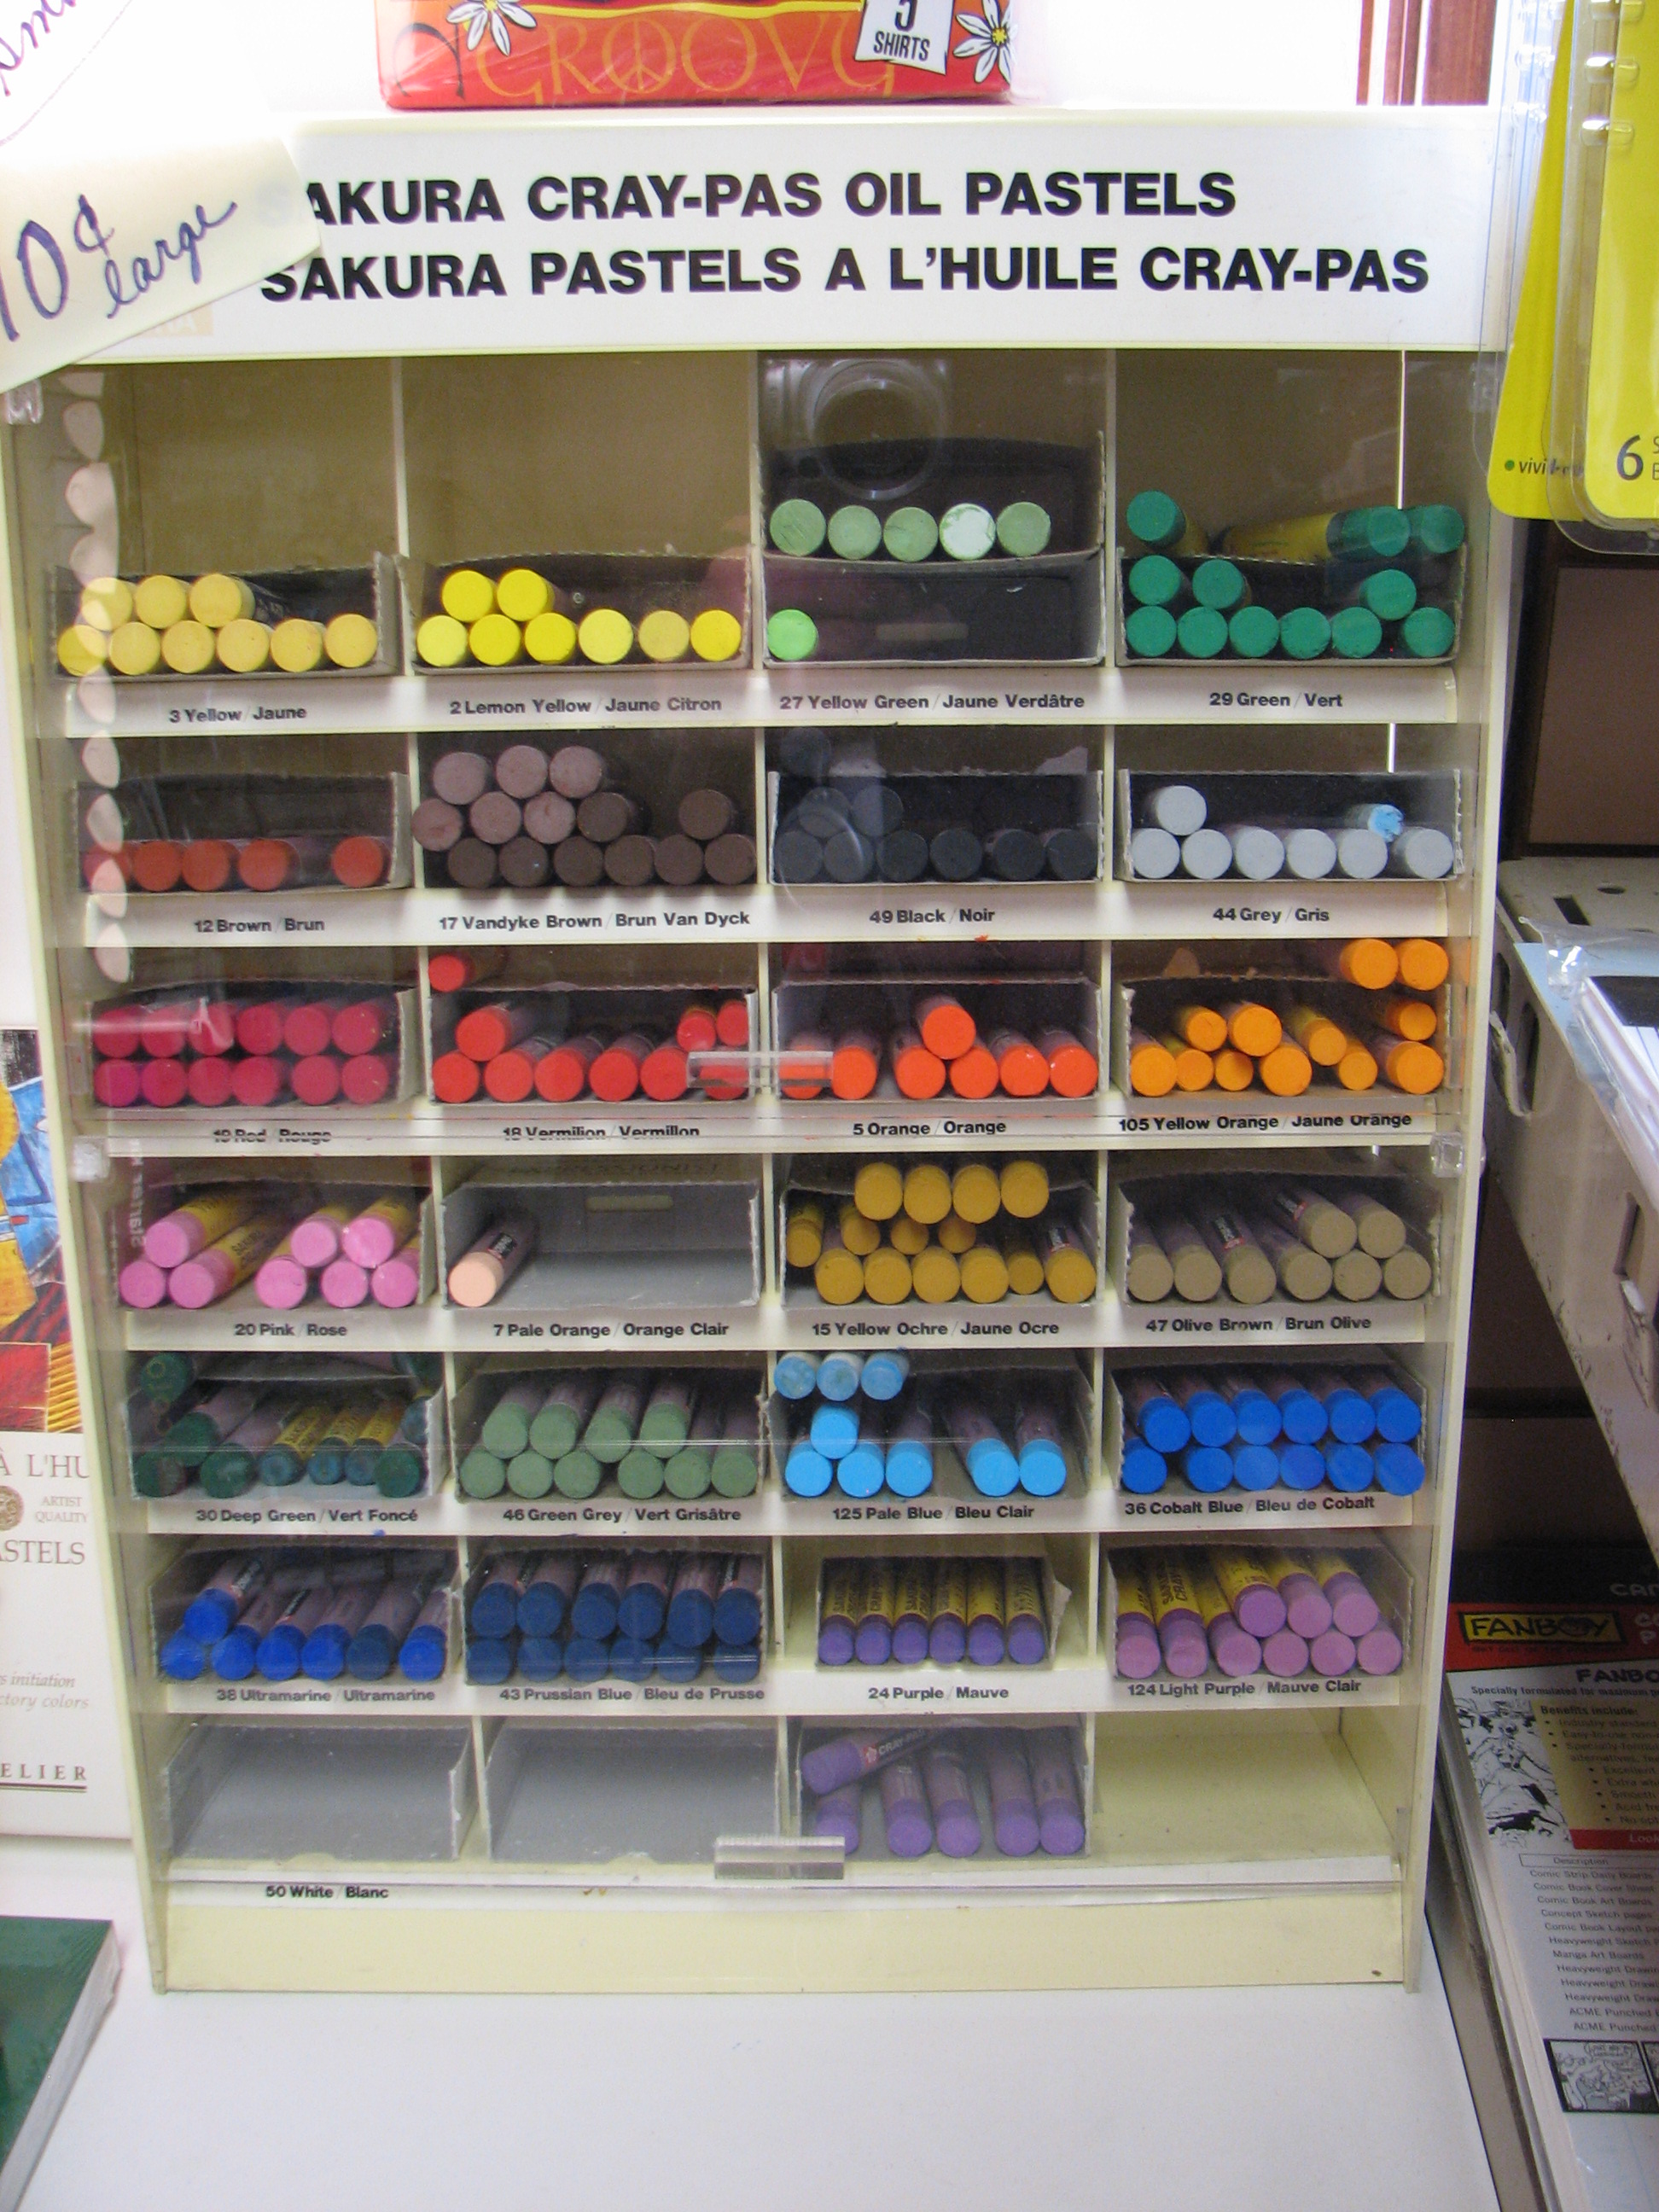 Oil pastel sets and individual sticks